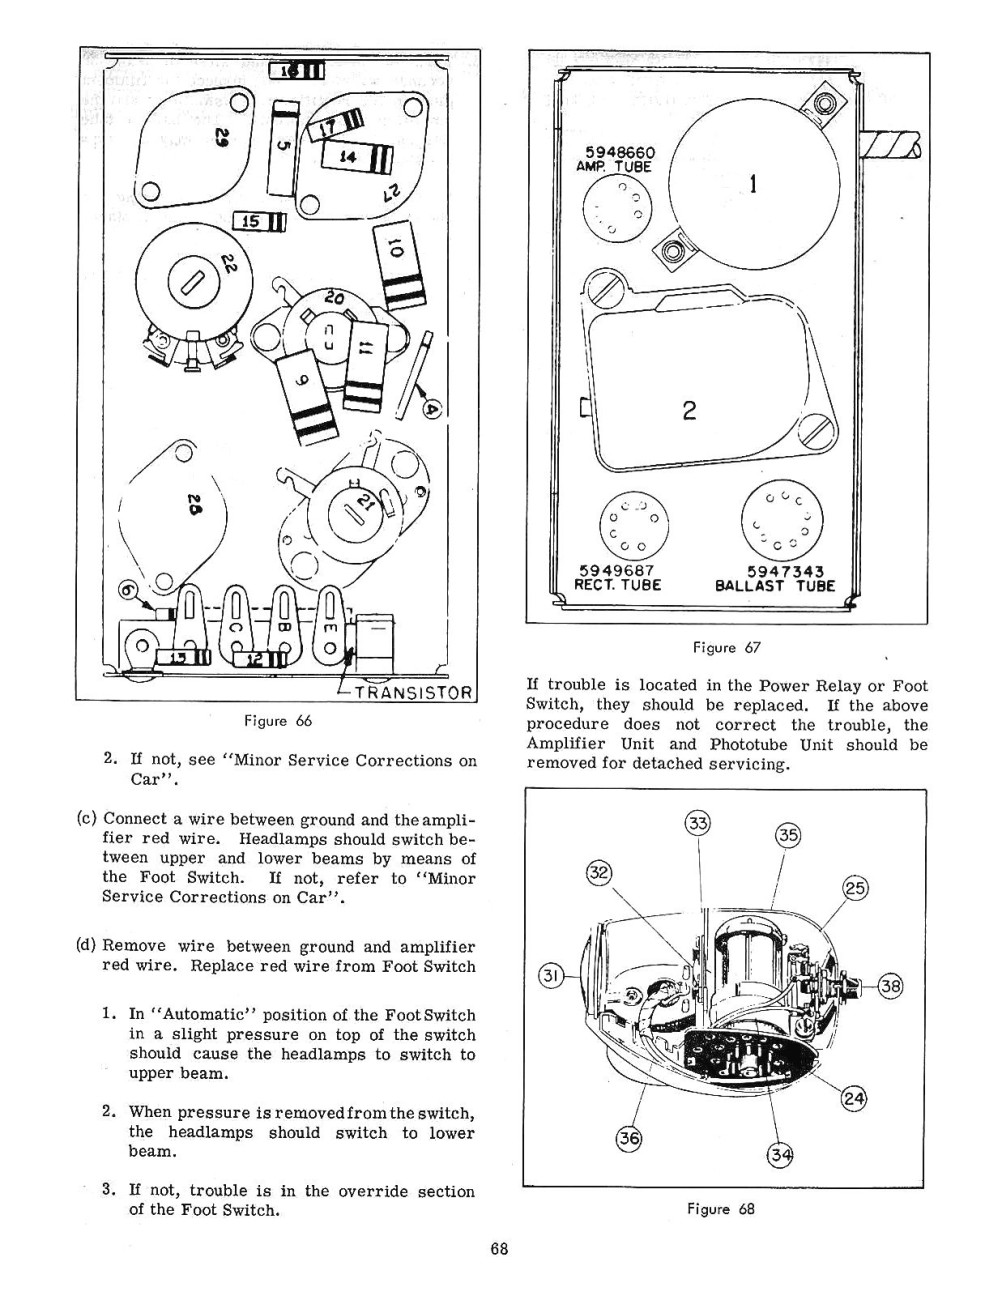 1958 Chevrolet RADIO and AUTRONIC EYE Service and Shop Manual